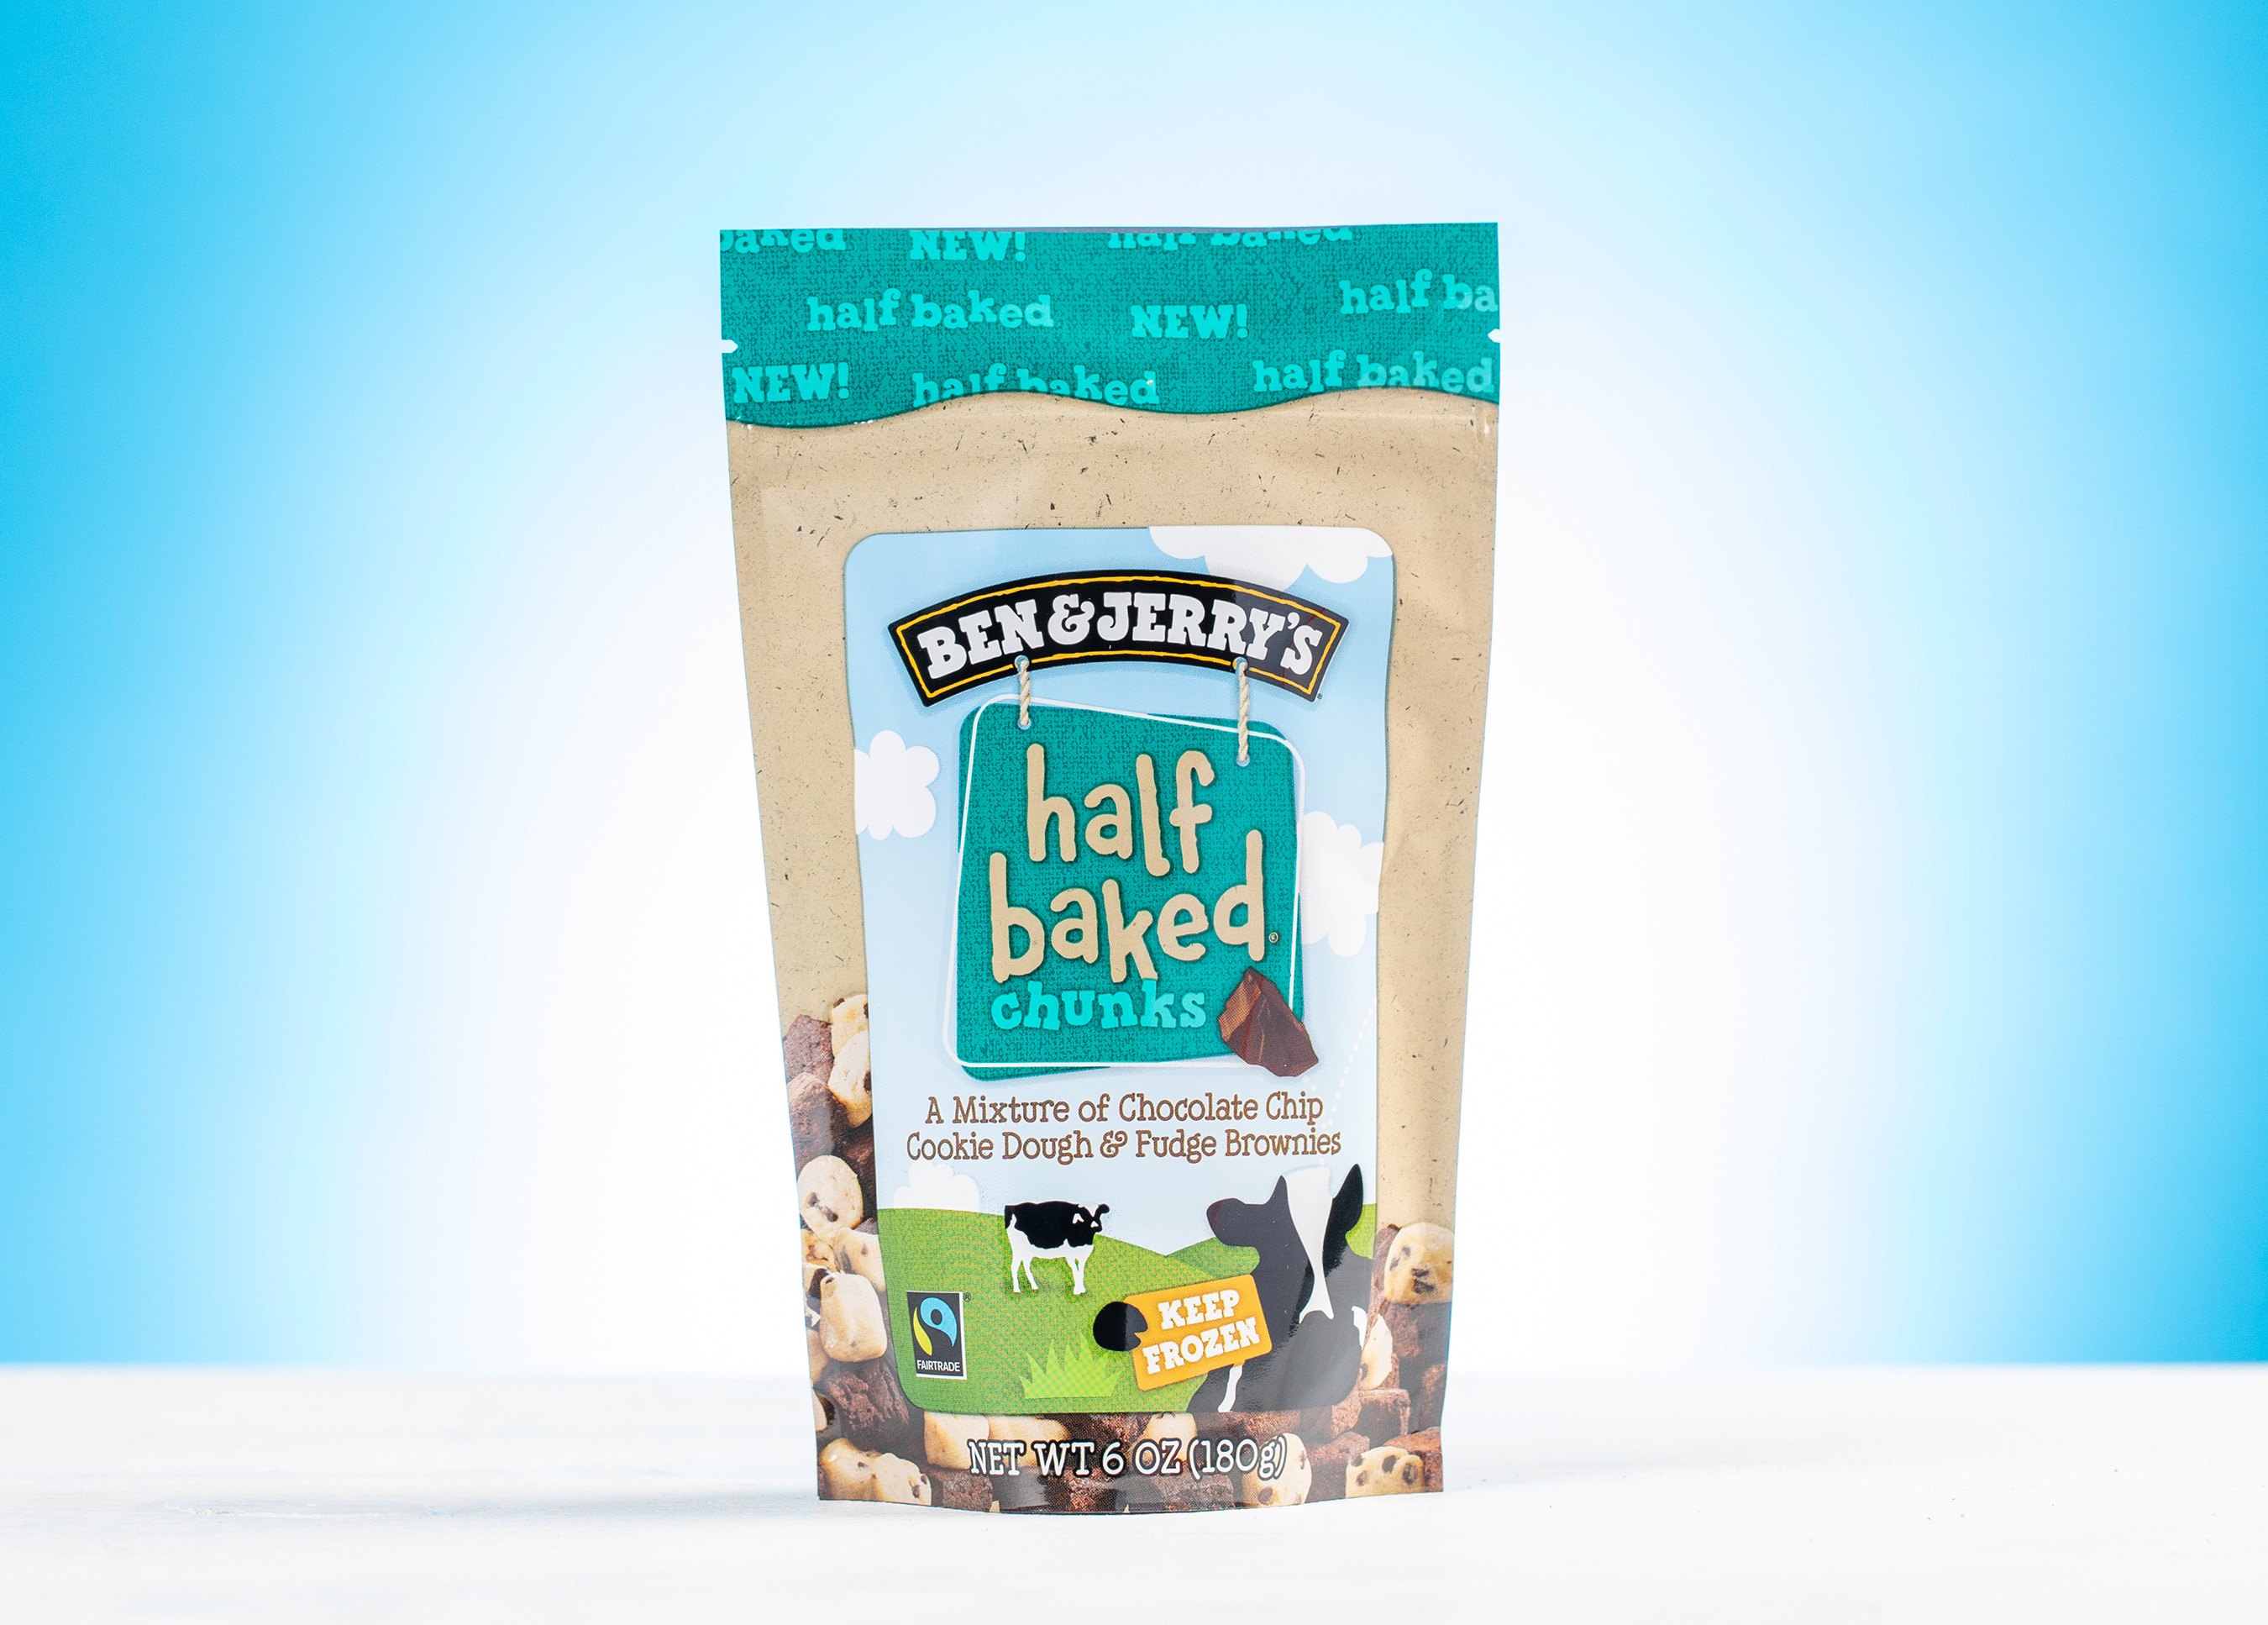 Half Baked Chunks is a mixture of chocolate chip cookie dough & fudge brownies.